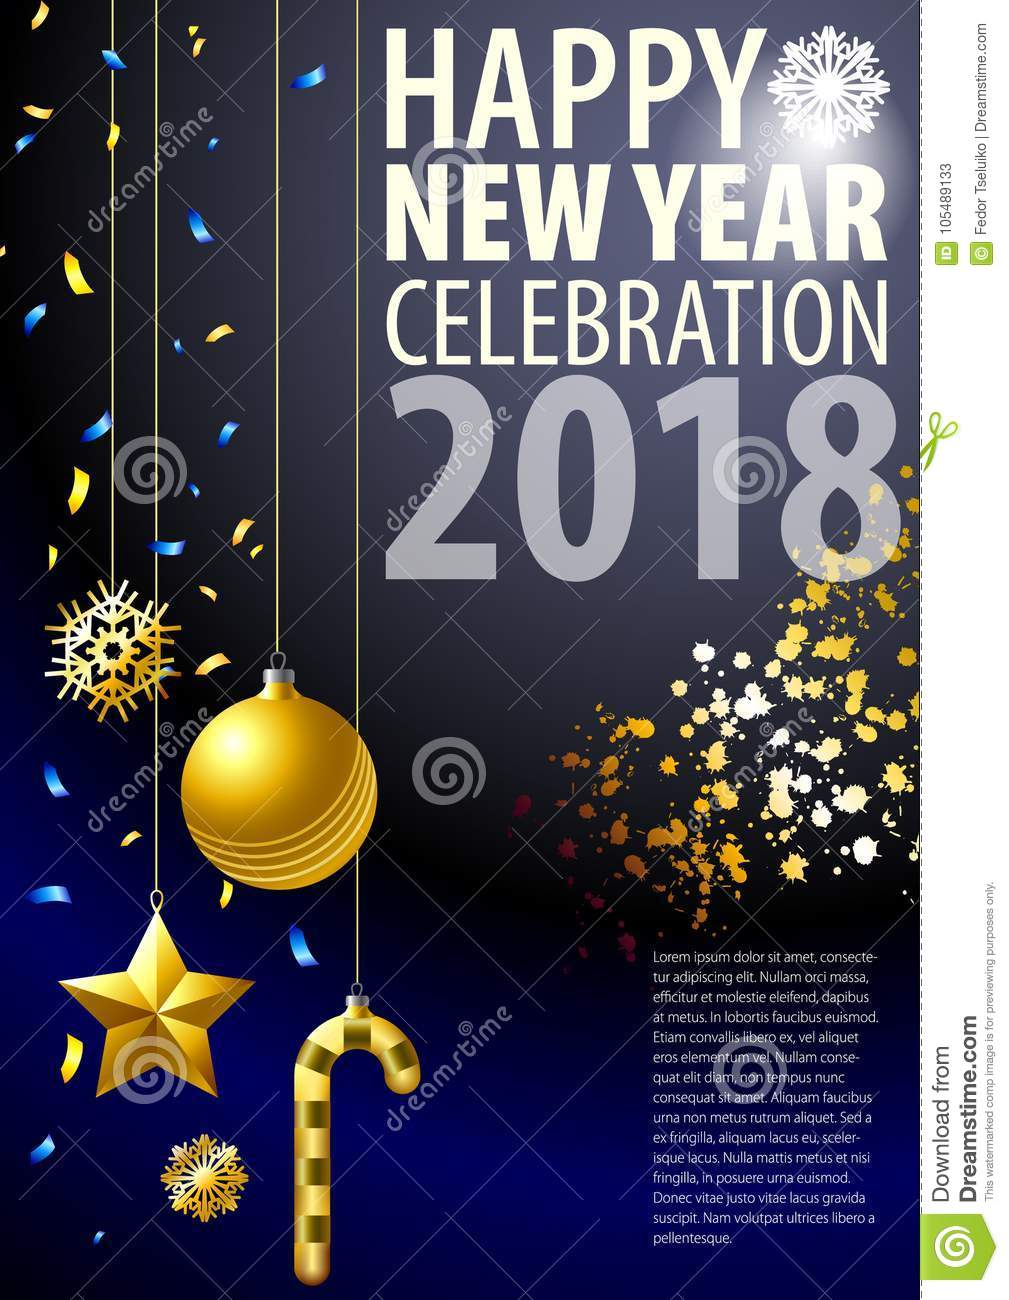 new year blank template for new year on christmas holiday new years accessories are in the composition